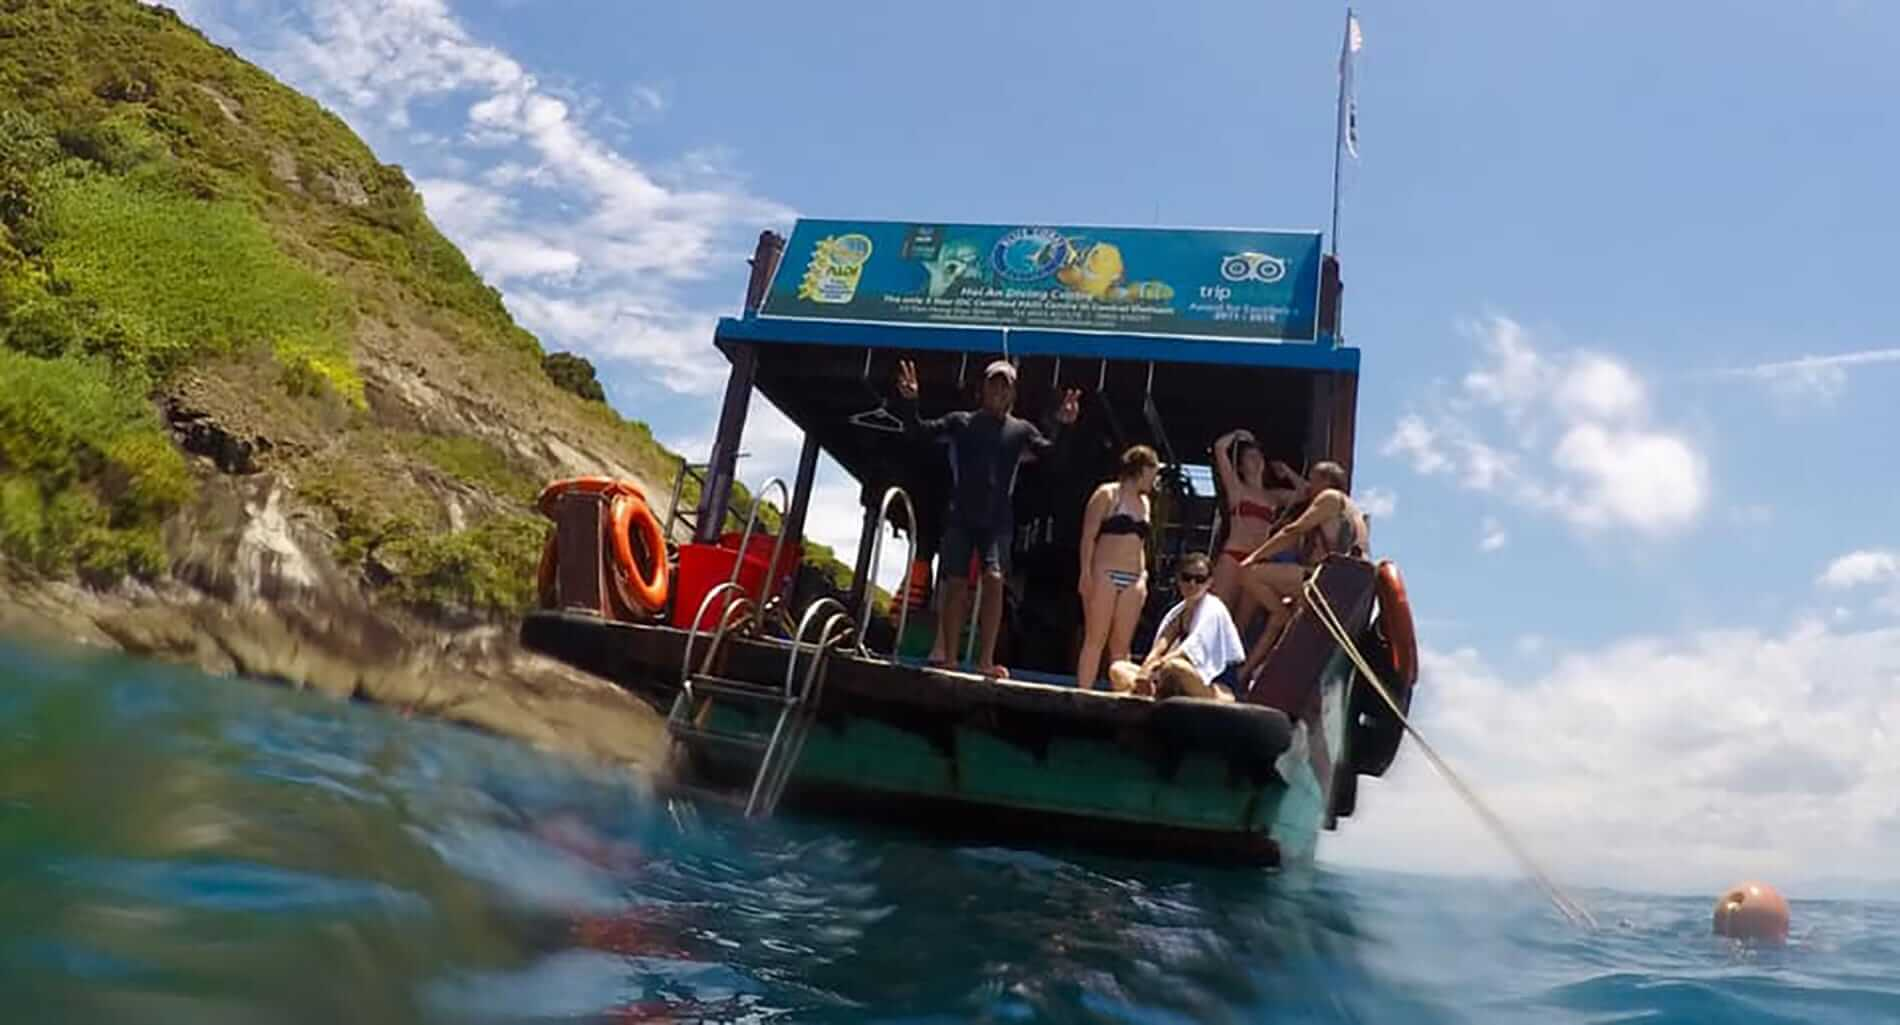 The Blue Coral dive boat from a divers perspective